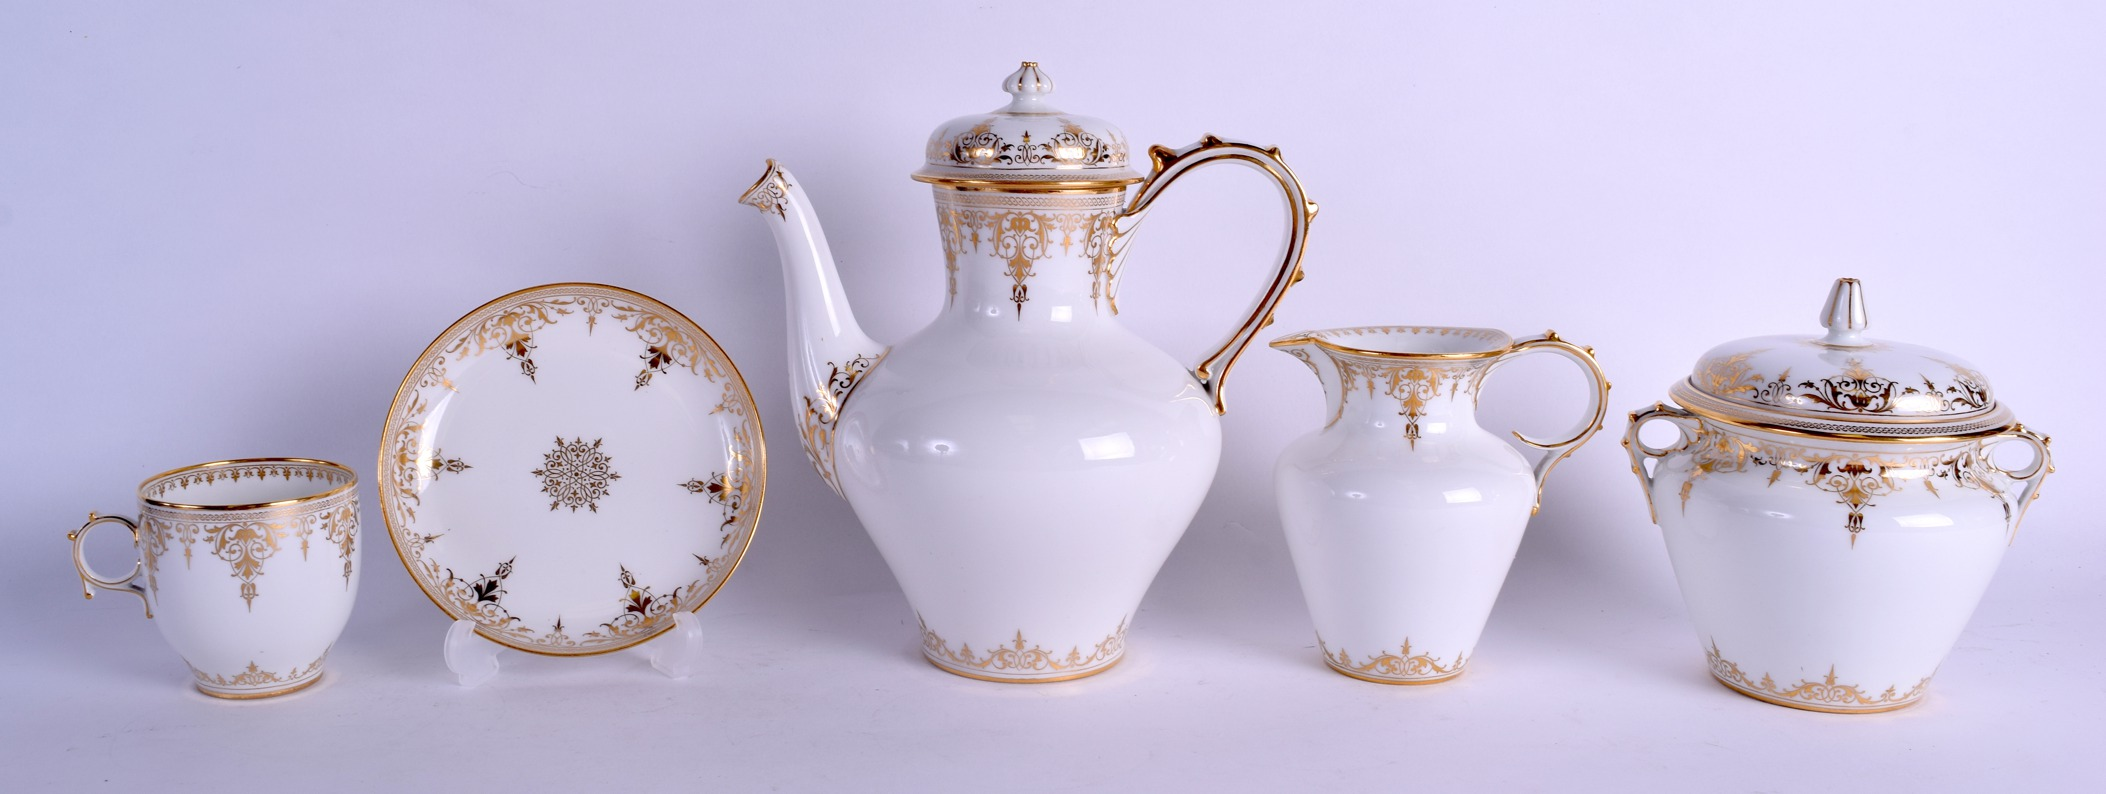 Lot 60 - A GOOD CASED 19TH CENTURY FRENCH SEVRES PORCELAIN TEASET painted with rich gilt scrolling foliage.